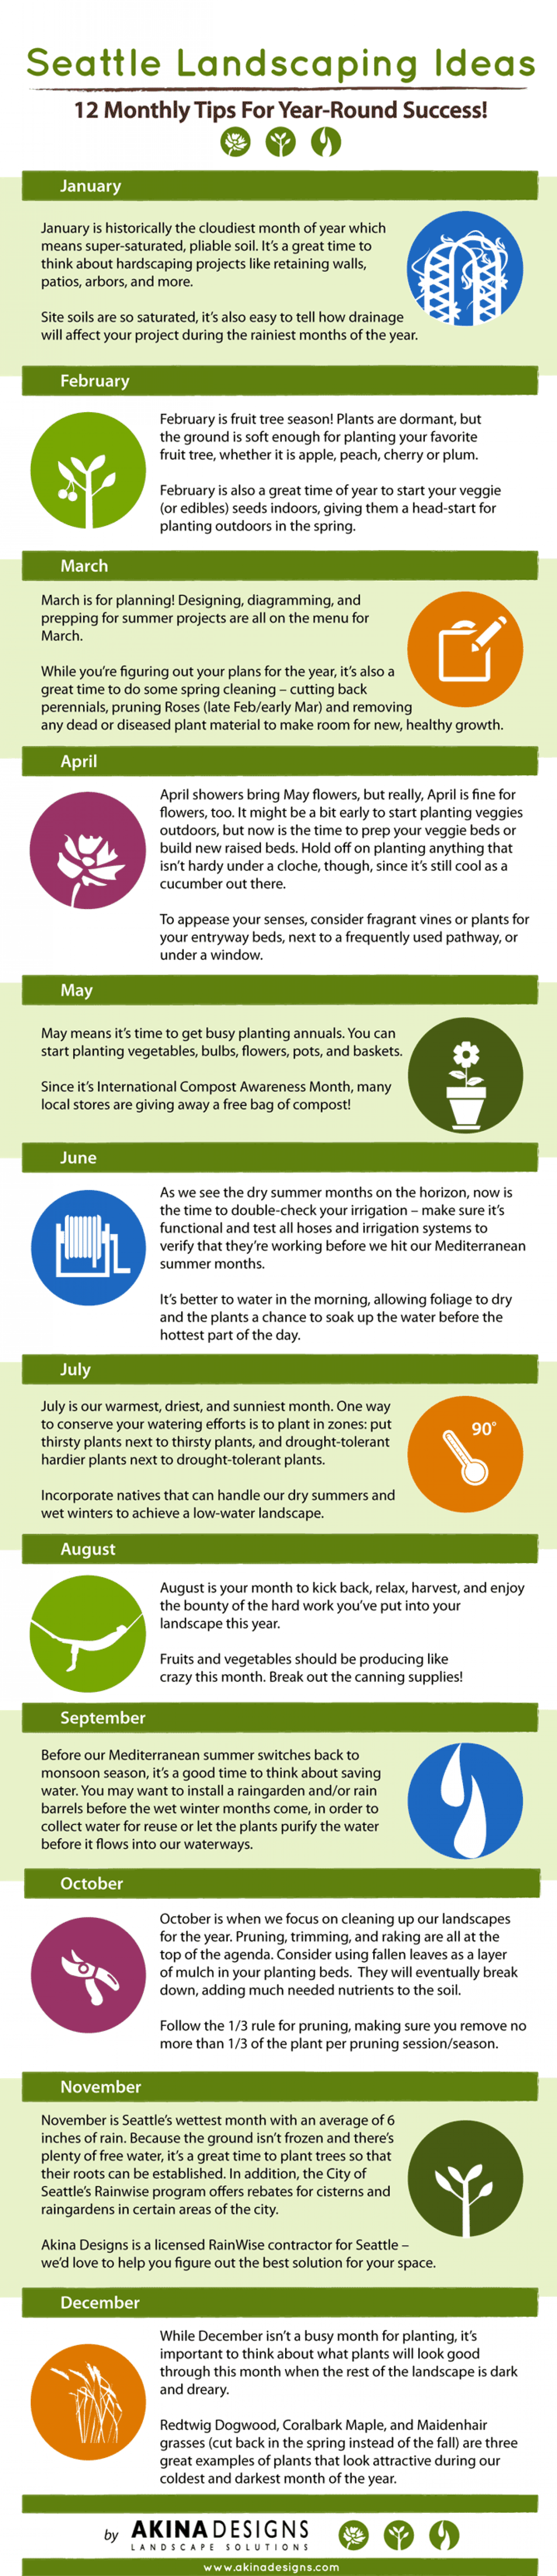 Seattle Landscaping Tips Infographic